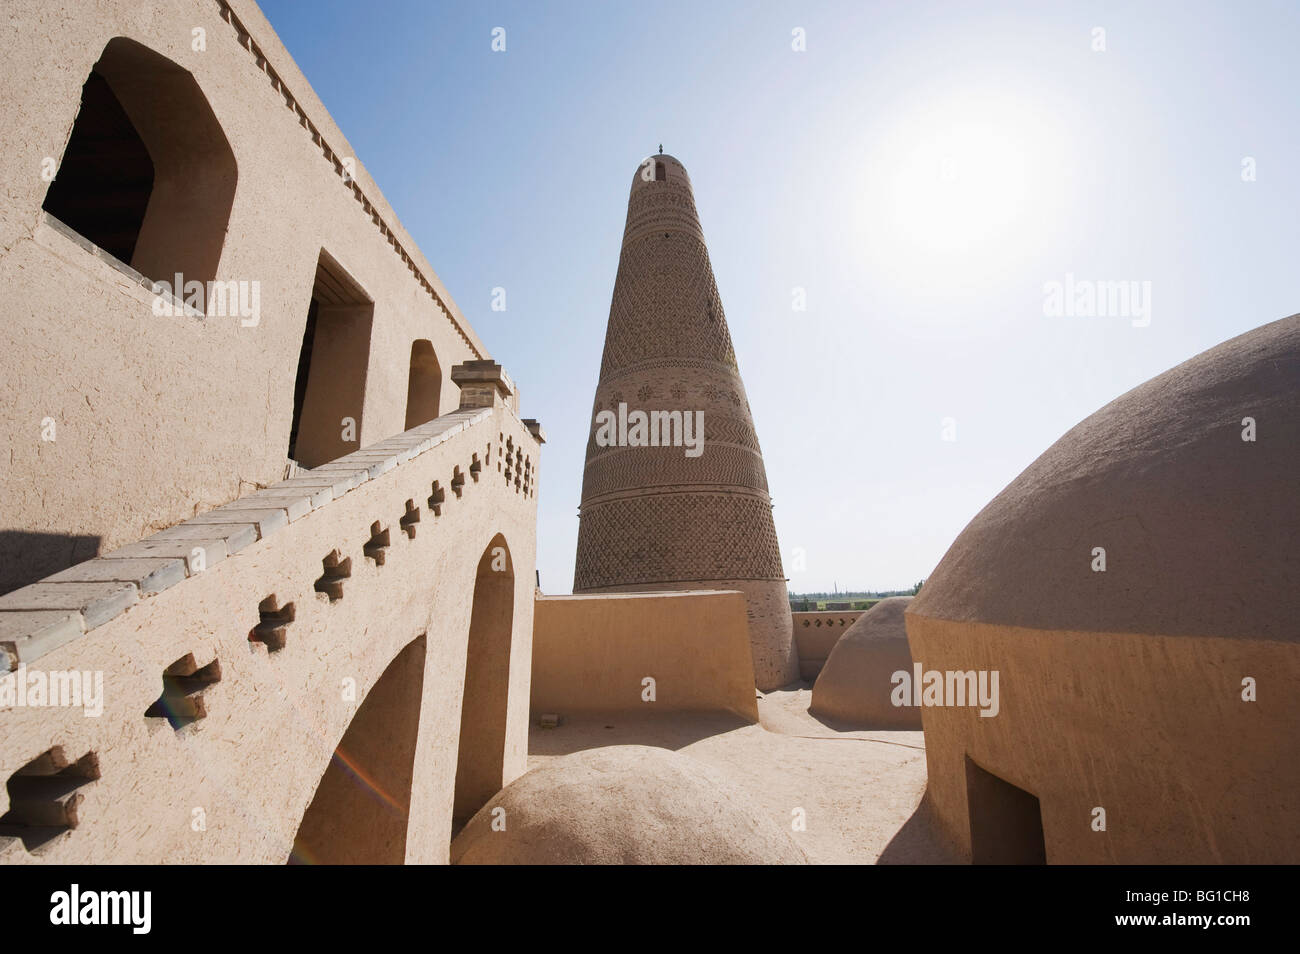 Emin Minaret, Turpan on the Silk Route, UNESCO World Heritage Site, Xinjiang Province, China, Asia - Stock Image